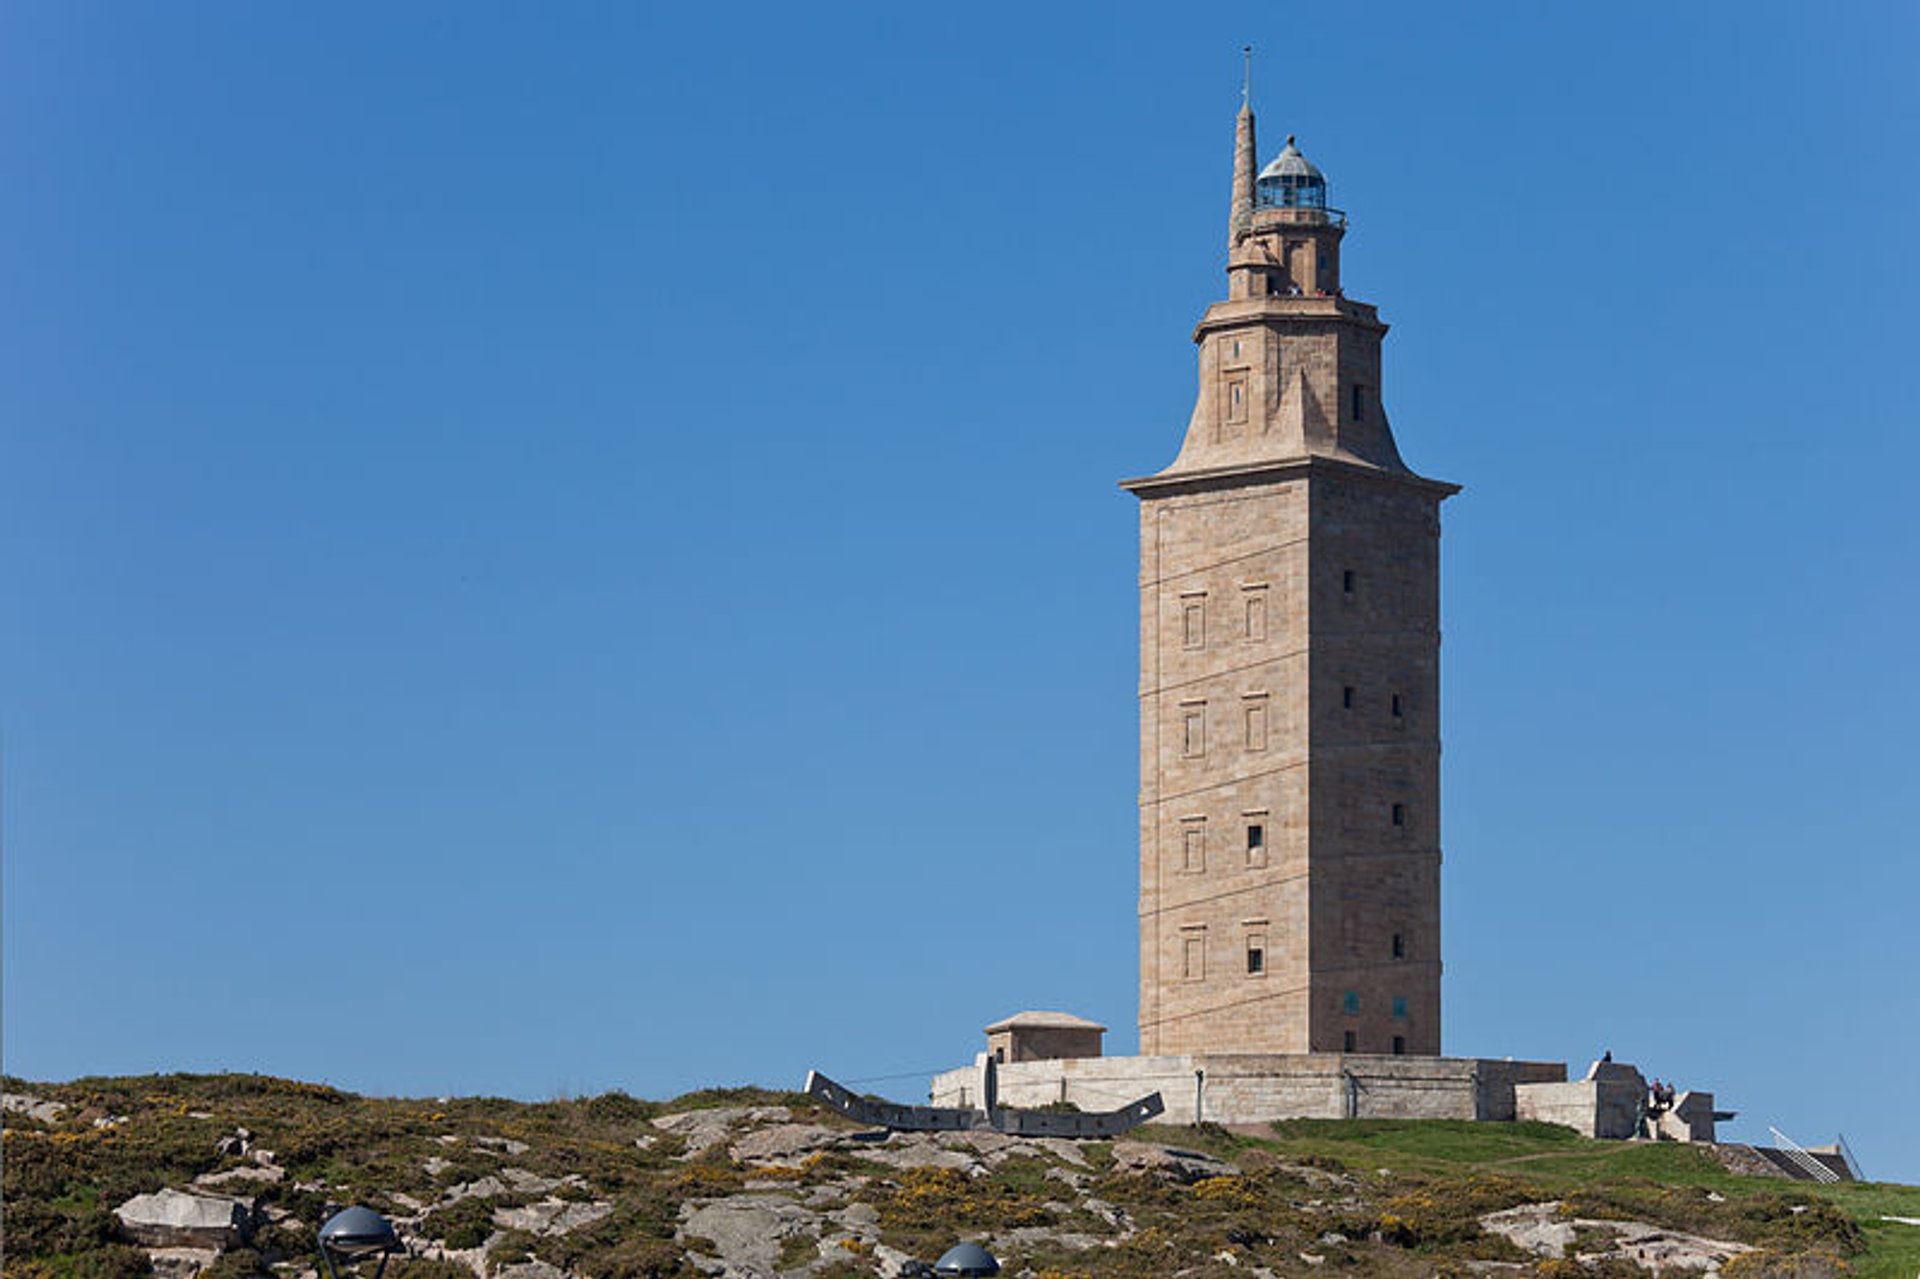 Tower of Hercules in Spain - Best Season 2020